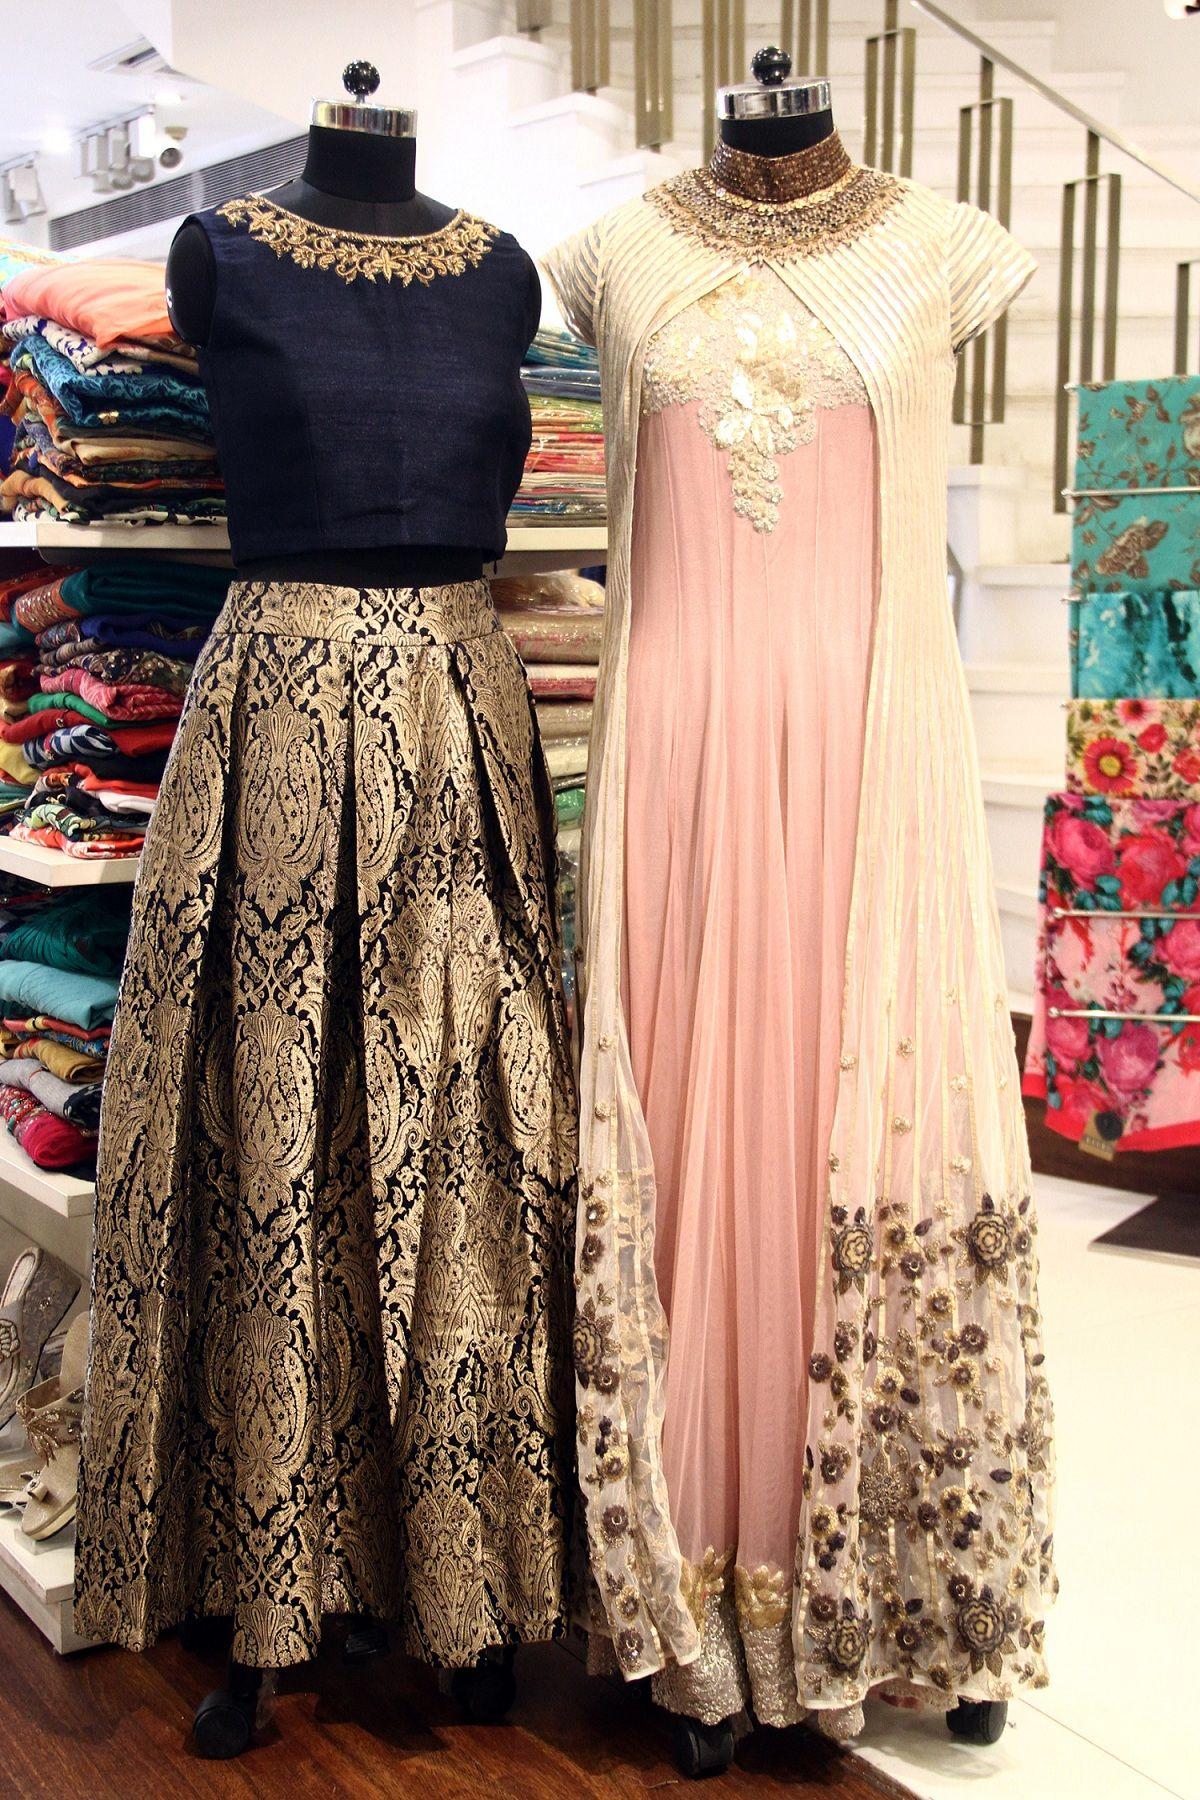 Is a black dress ok to wear to a wedding  Standing out in Style kalkifashion fashion love  DESIGNER WEAR